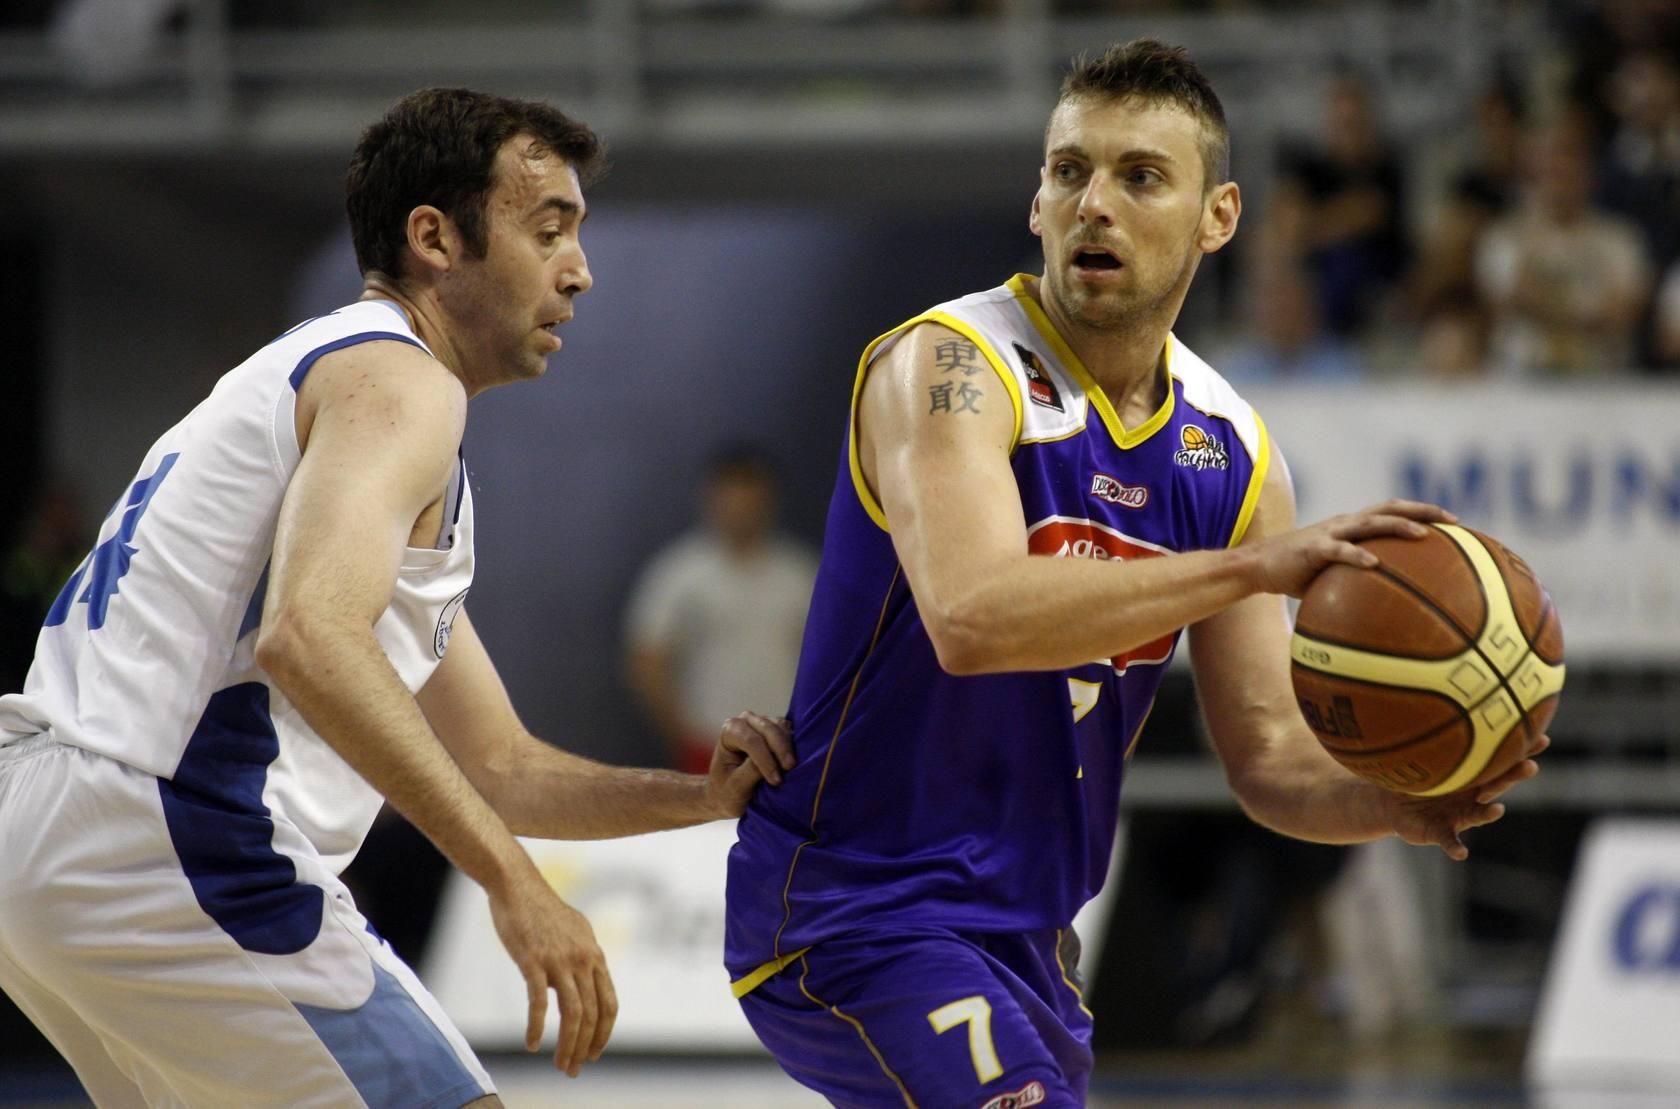 'Play off' de ascenso a la ACB entre el Lucentum y el Palencia